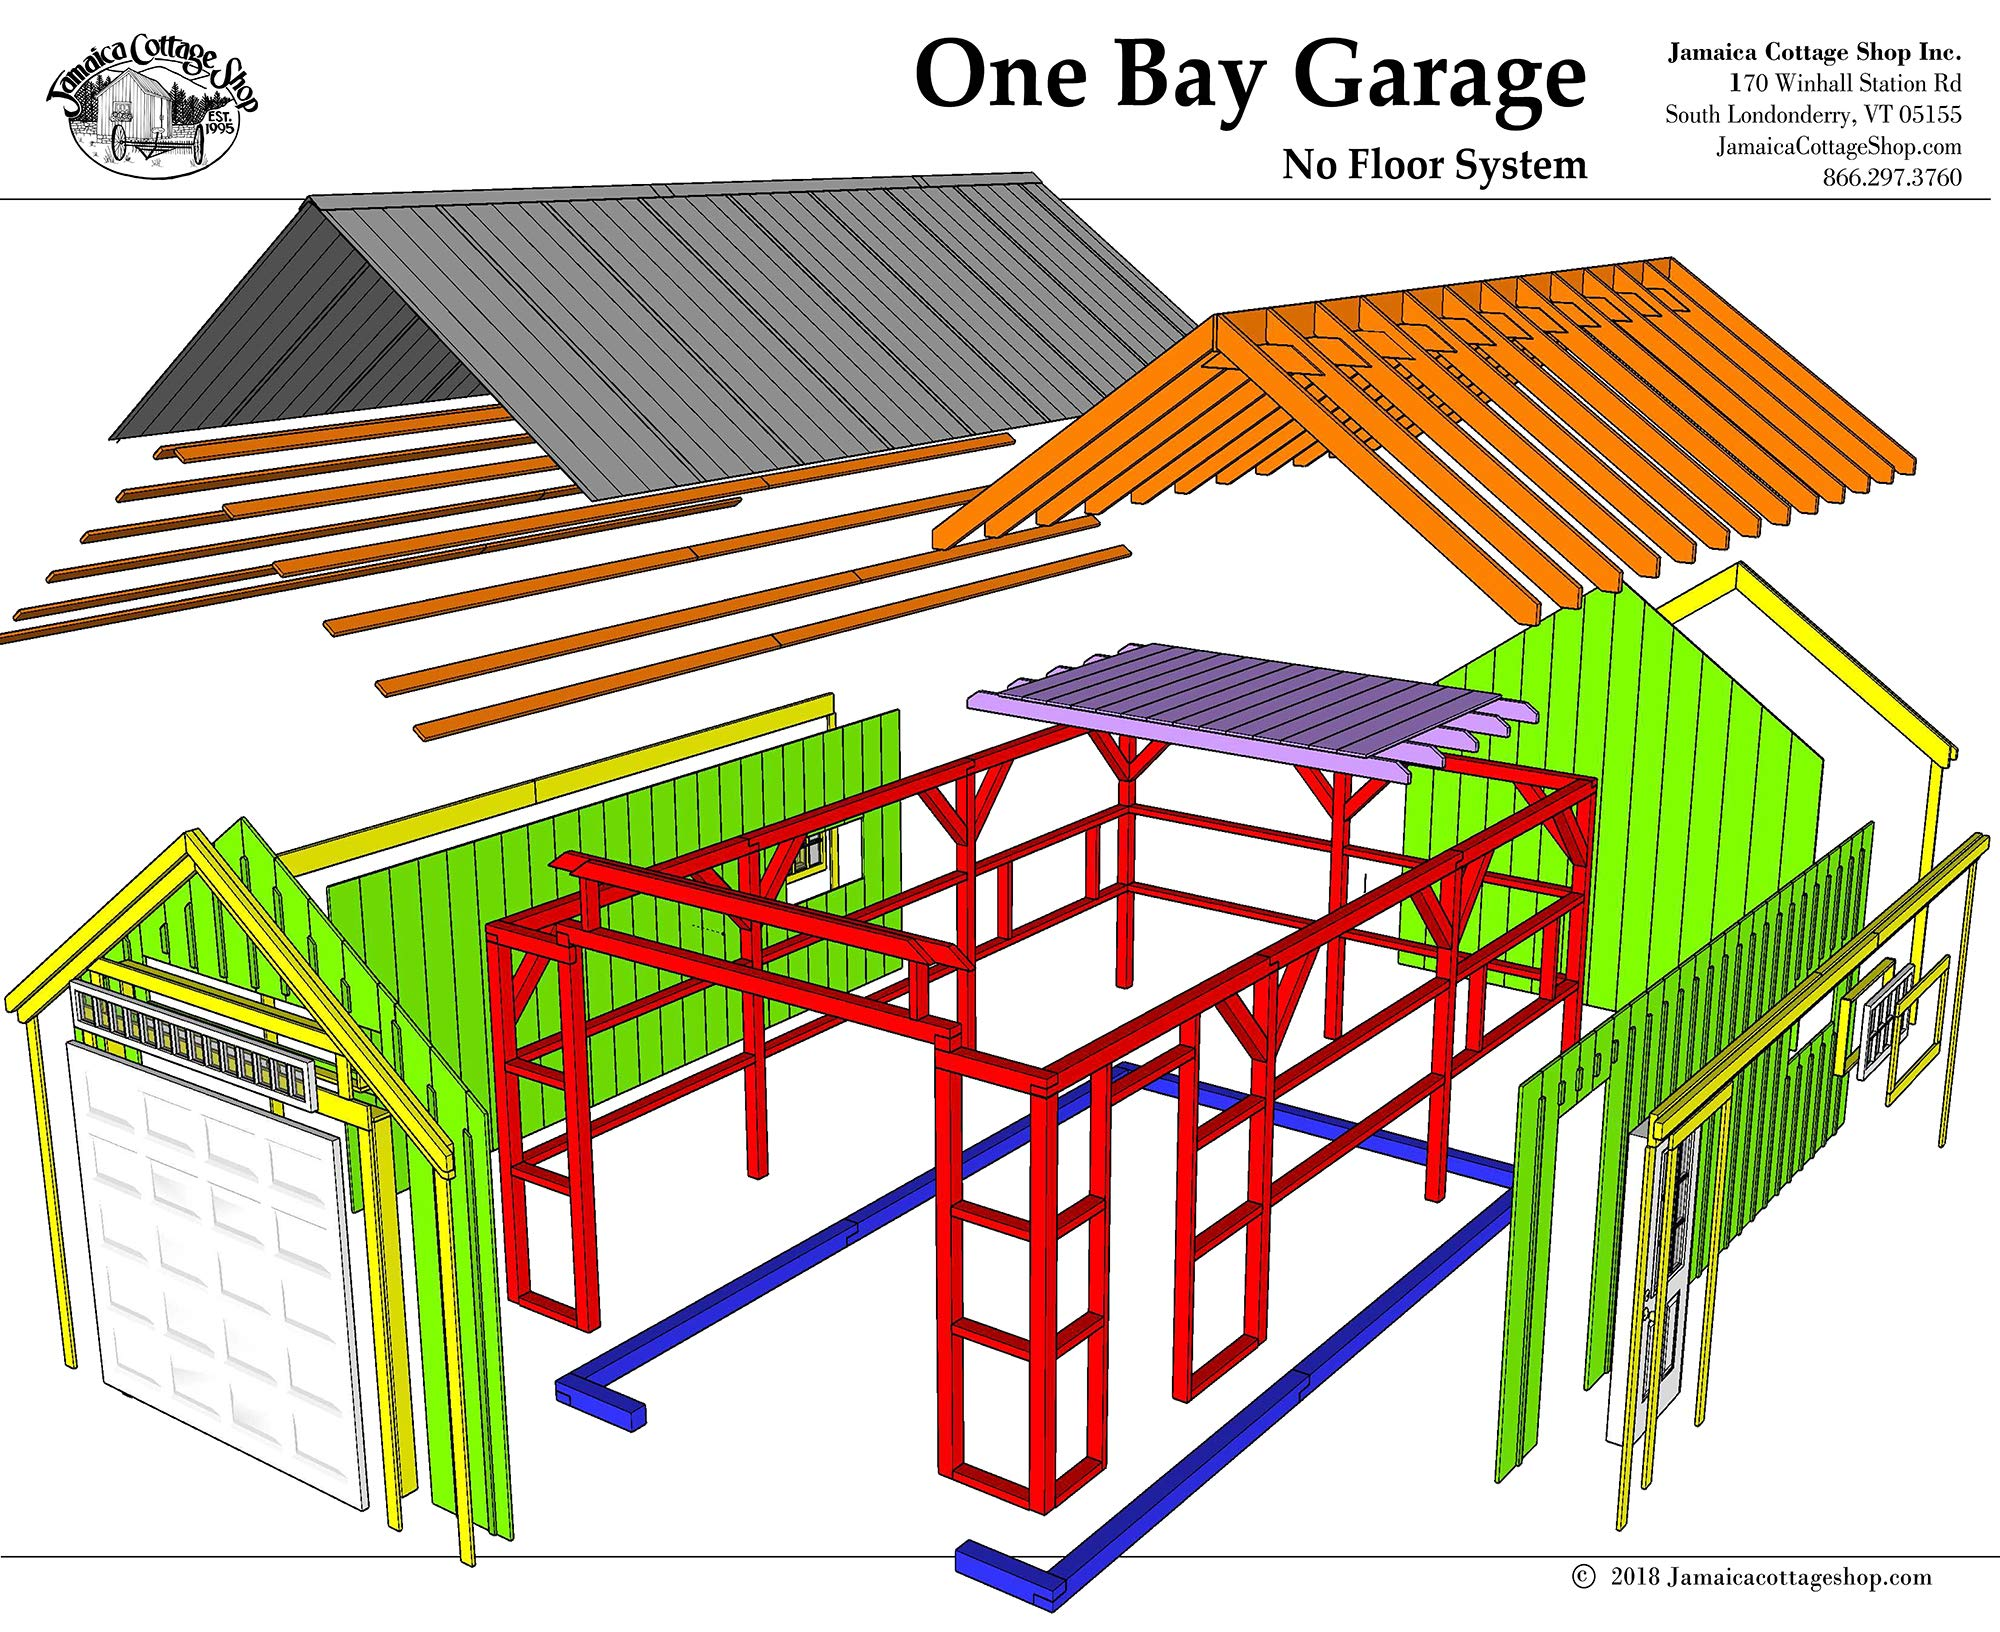 14x20 Timber Frame Post & Beam One Bay Garage Plans with Loft - Step-By-Step DIY Building Plans by Jamaica Cottage Shop, Inc.